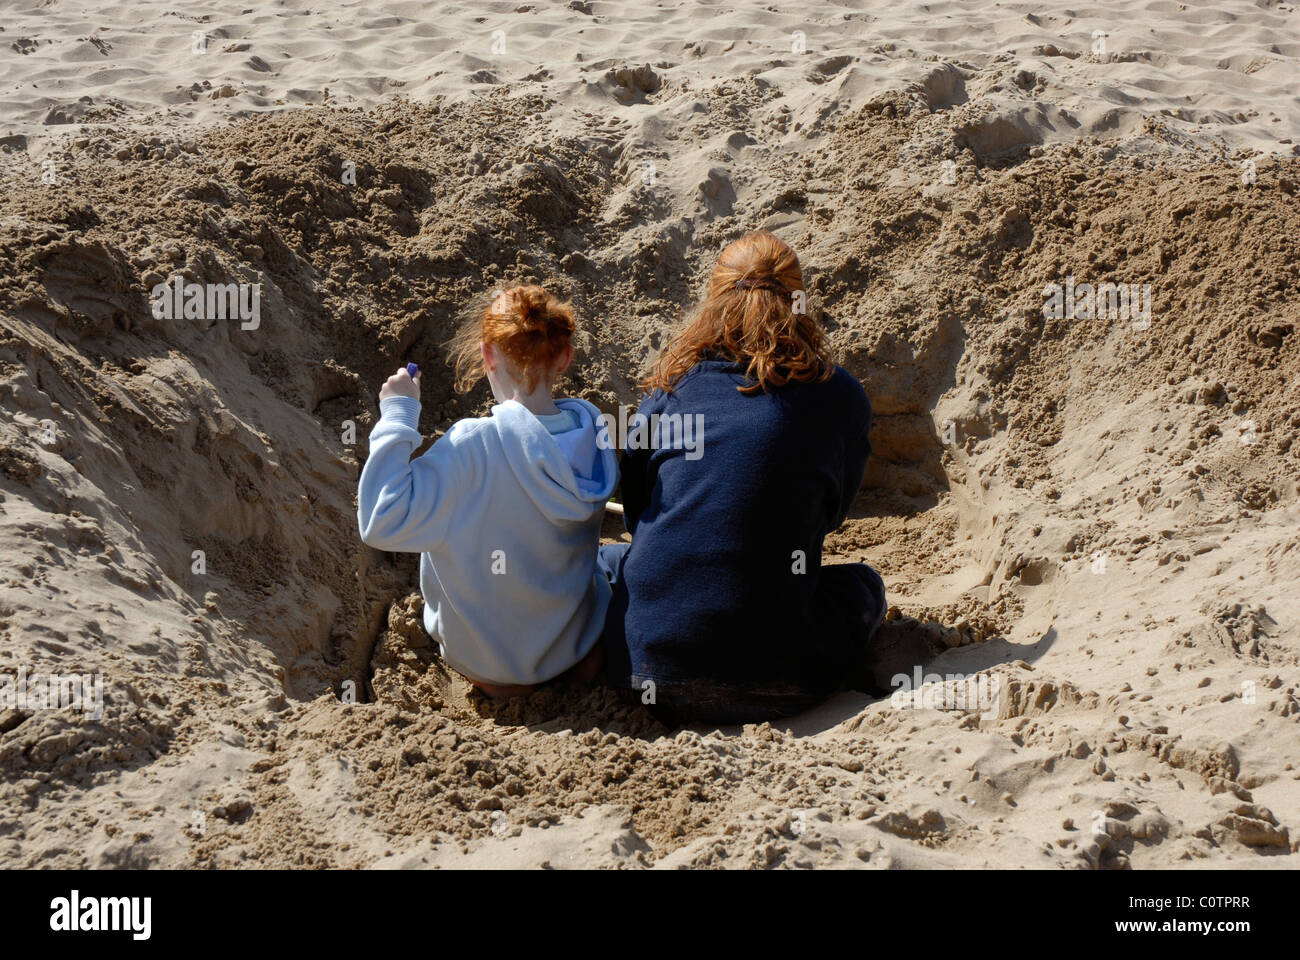 Rear view of two girls digging a large hole on the beach - Stock Image